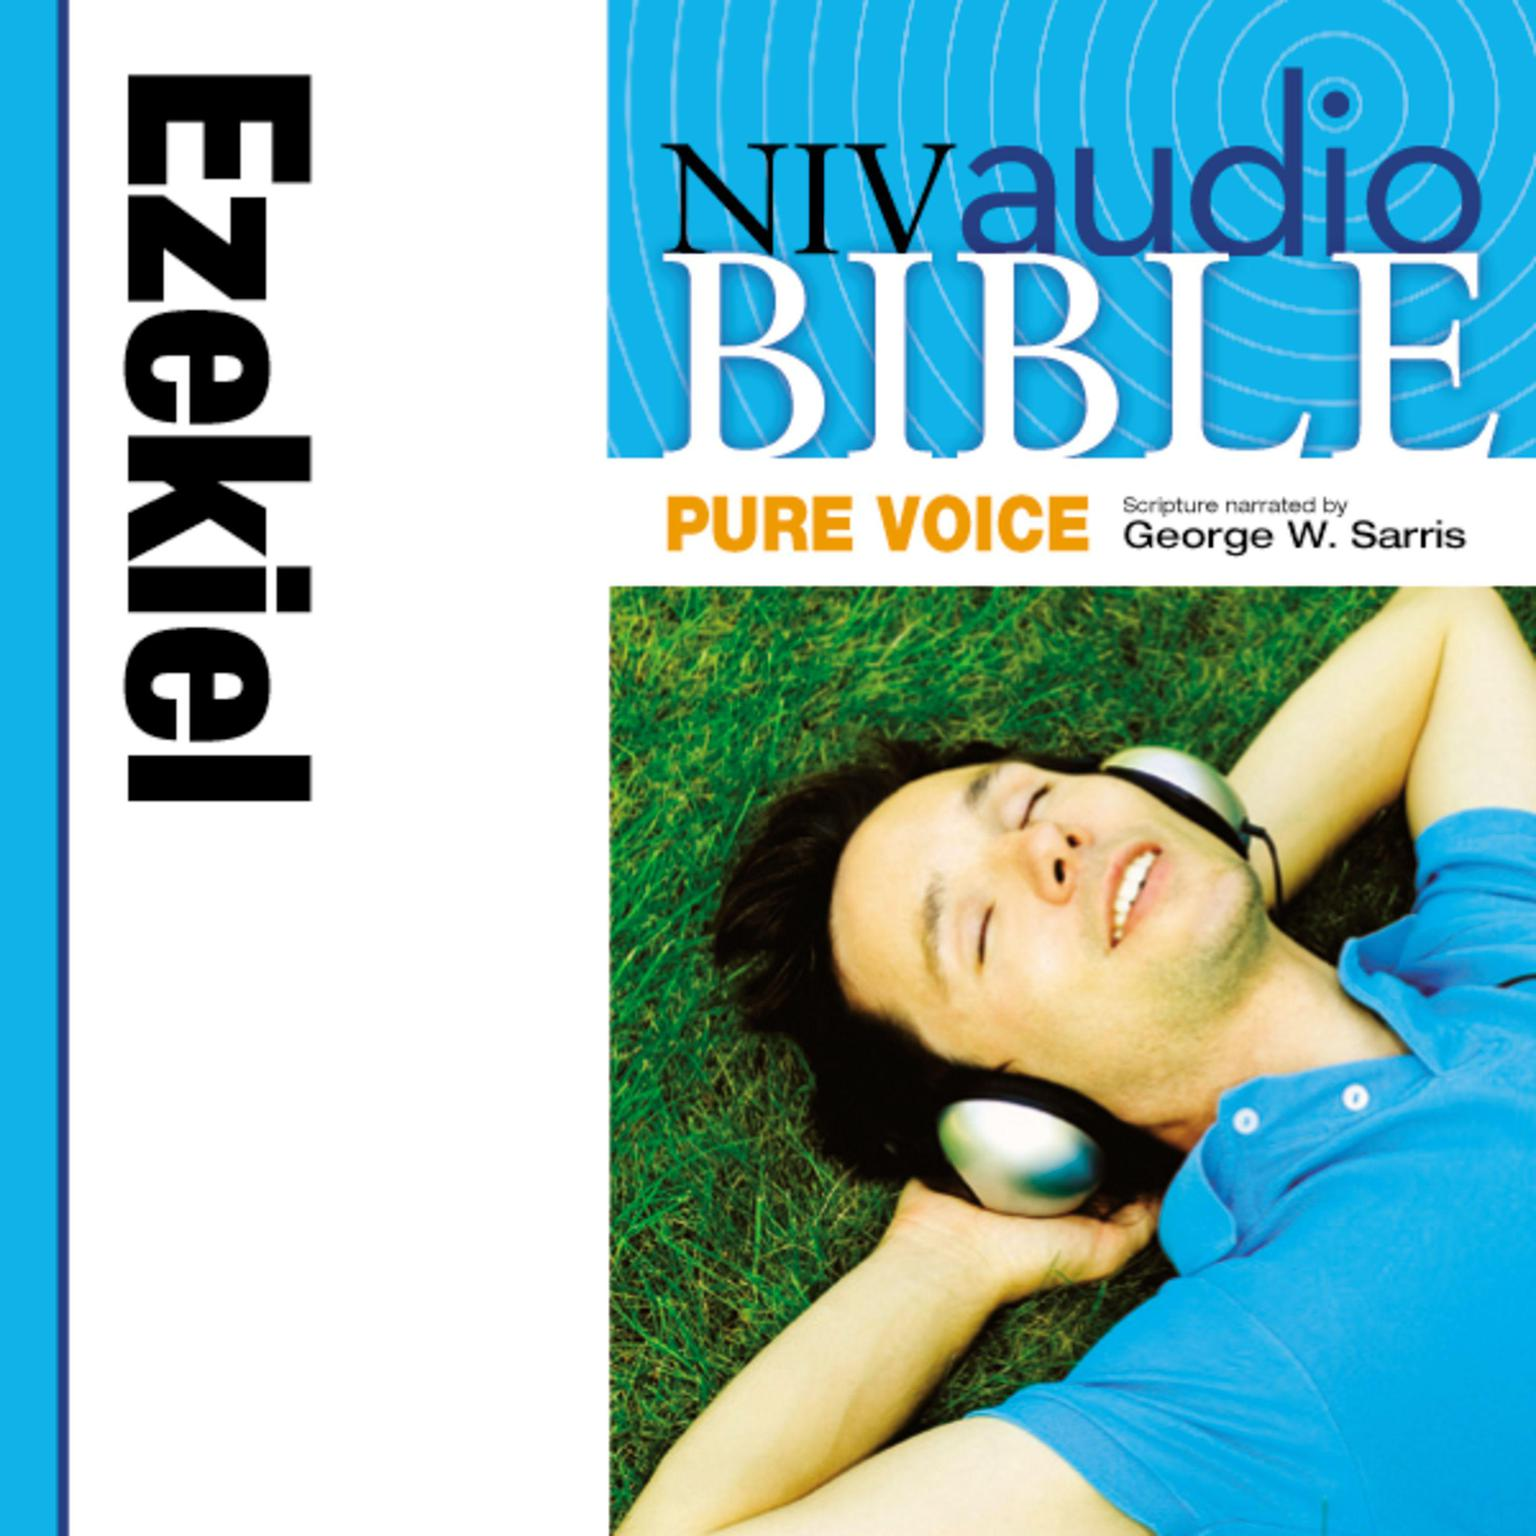 Printable NIV, Audio Bible, Pure Voice: Ezekiel, Audio Download (Narrated by George W. Sarris) Audiobook Cover Art